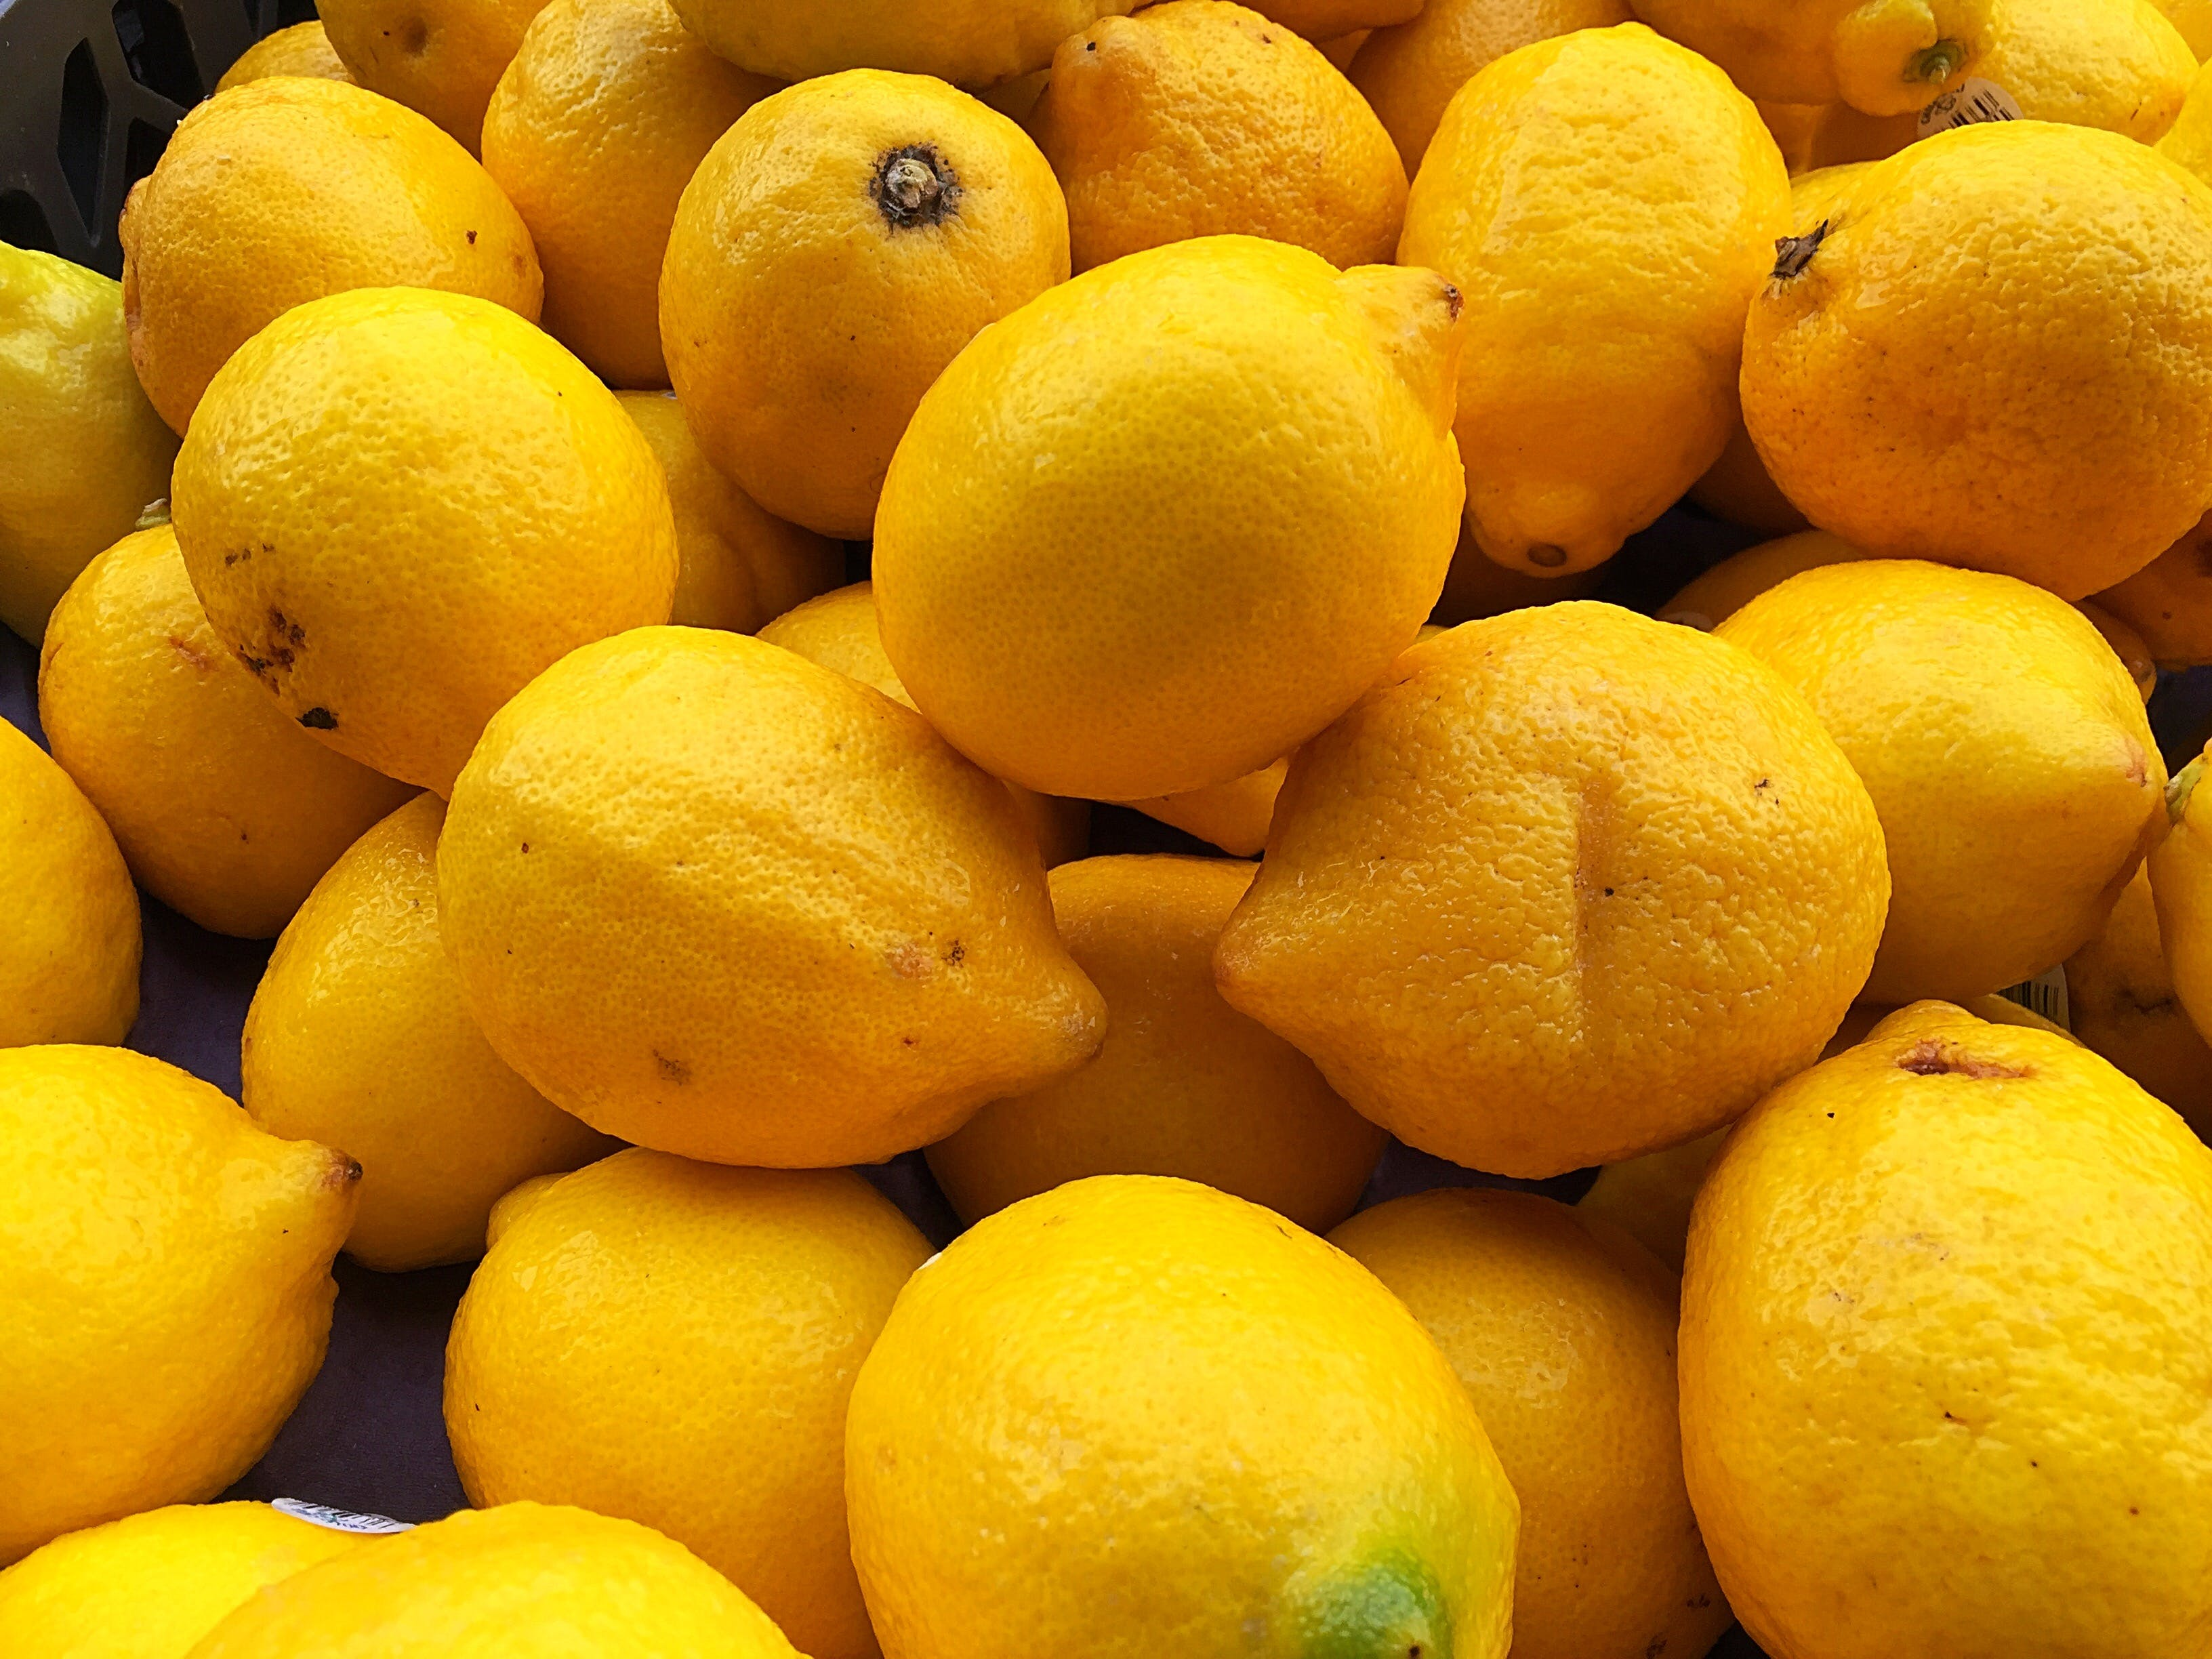 Free stock photo of citrus fruit, lemons, yellow